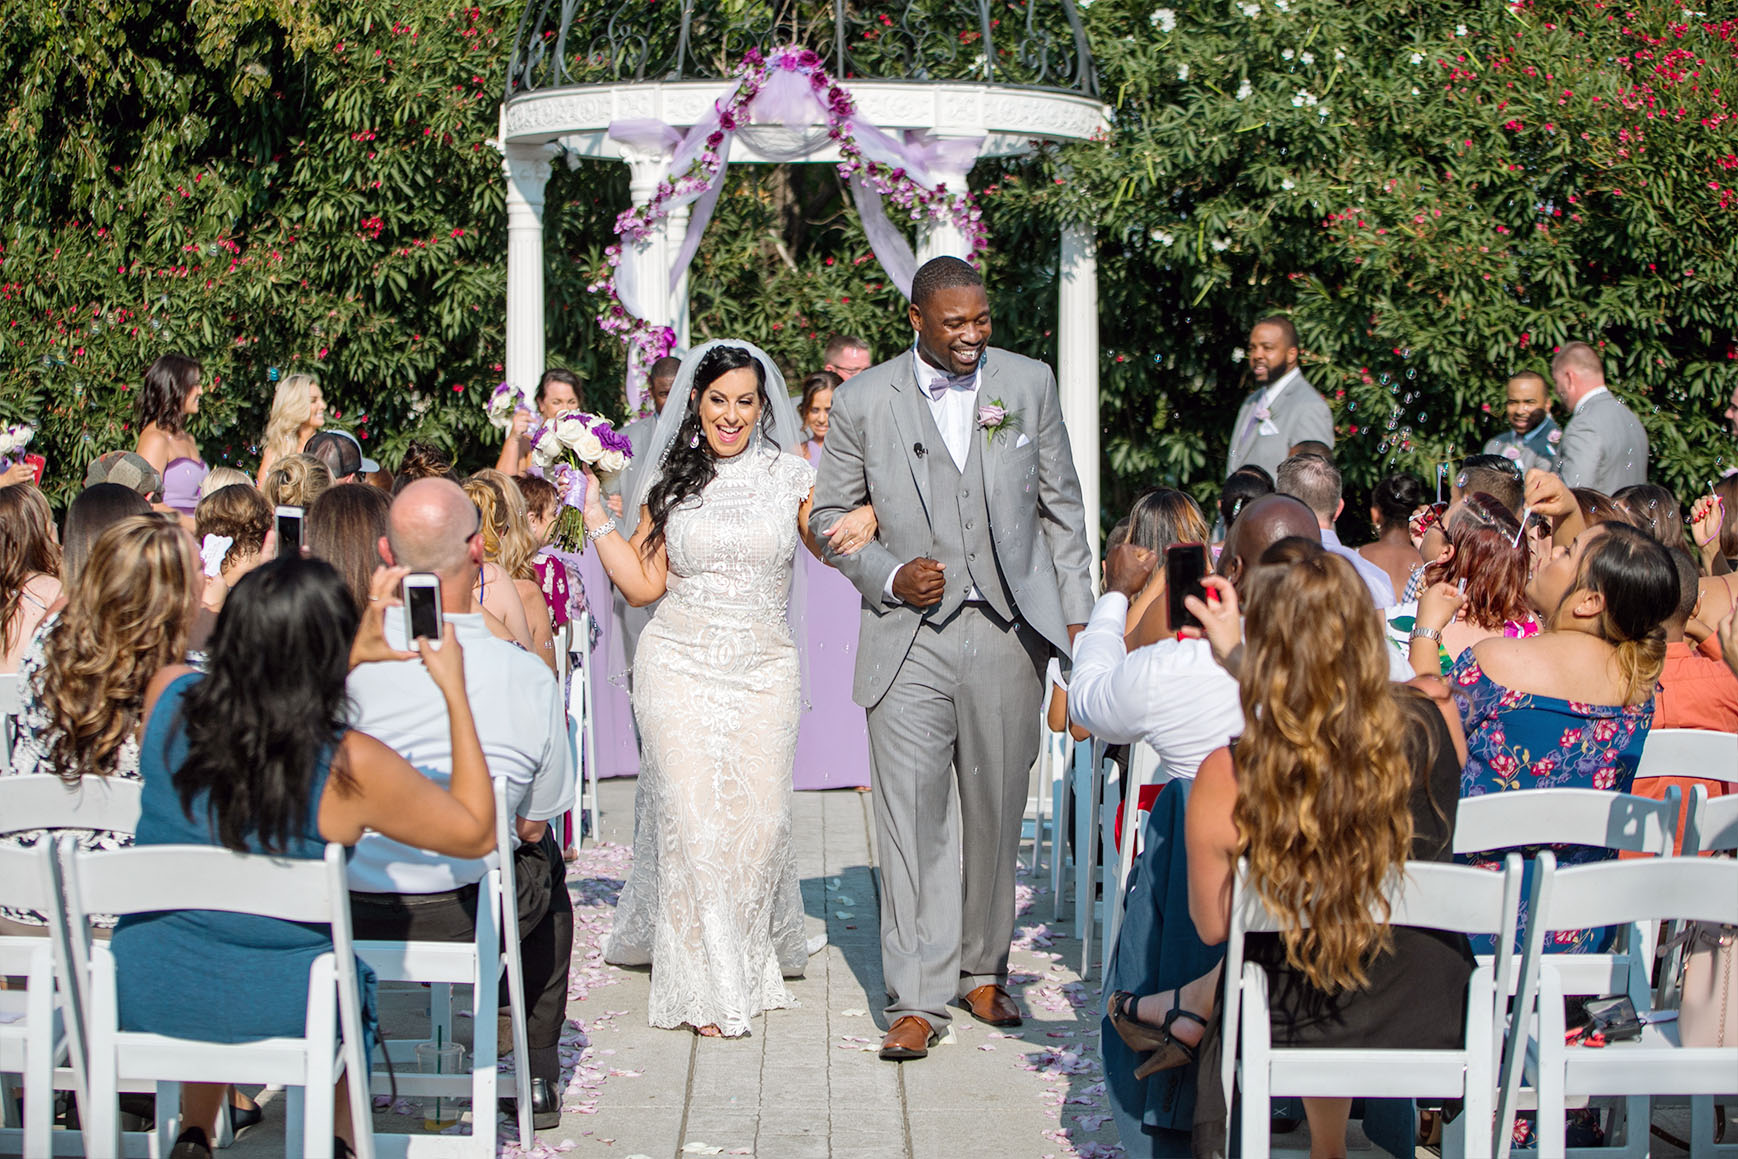 Elegant Ceremonies - Brentwood - Brentwood, California - Contra Costa County - Wedgewood Weddings